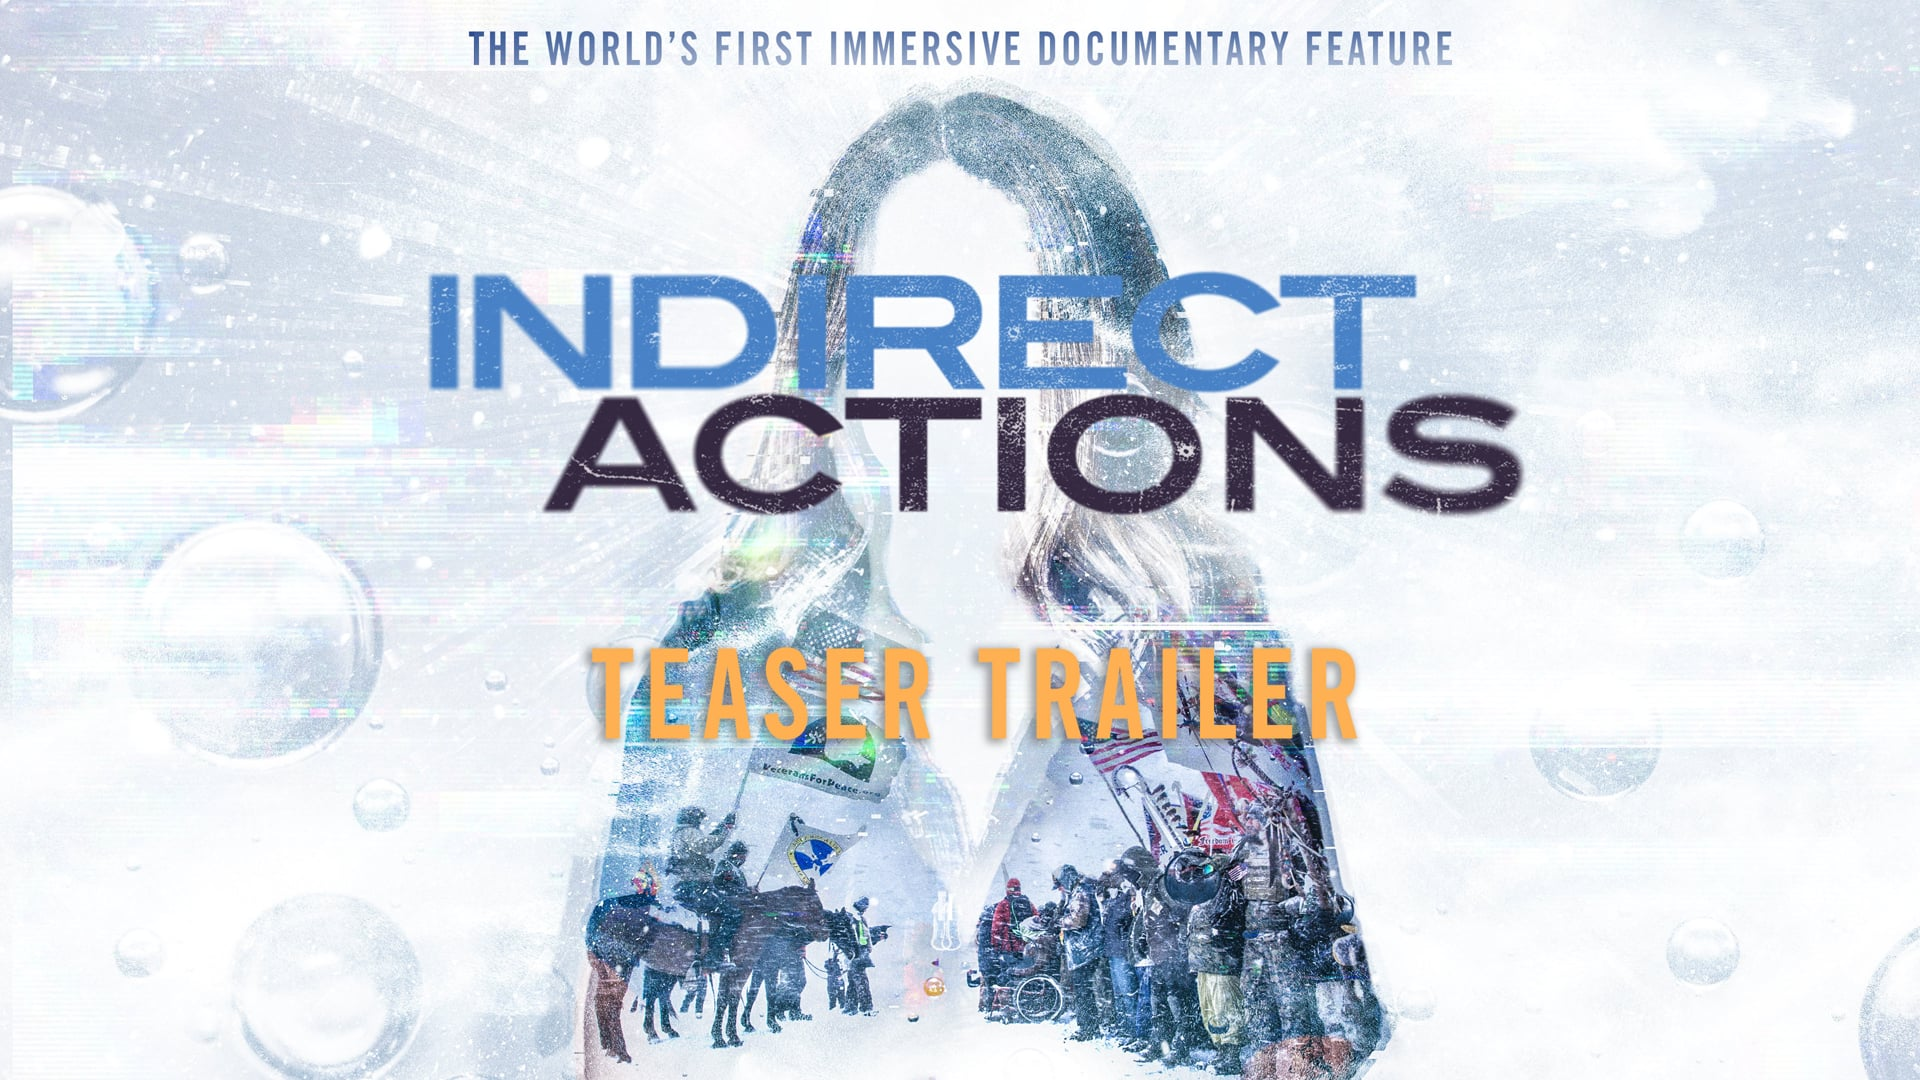 INDIRECT ACTIONS Trailer (2020) | Immersive Standing Rock Documentary